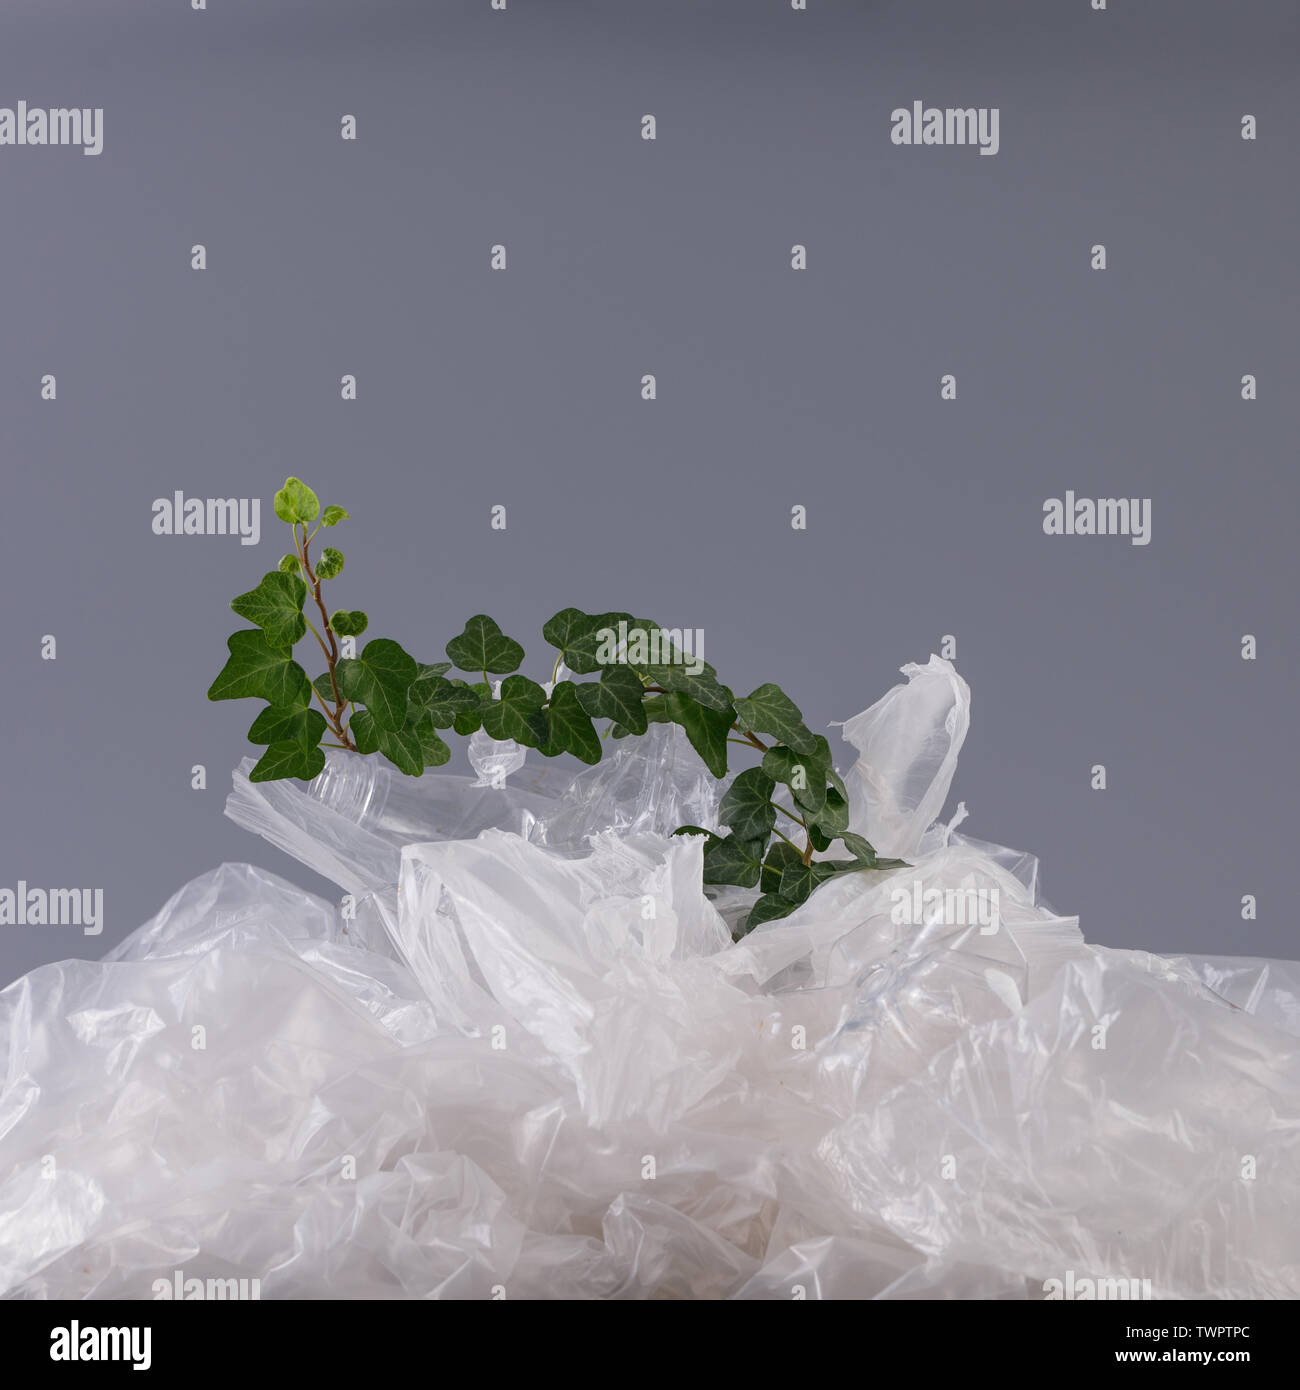 Gentle bindweed plant in a heap of plastic. Concept of environmental protection and plastic processing. - Stock Image